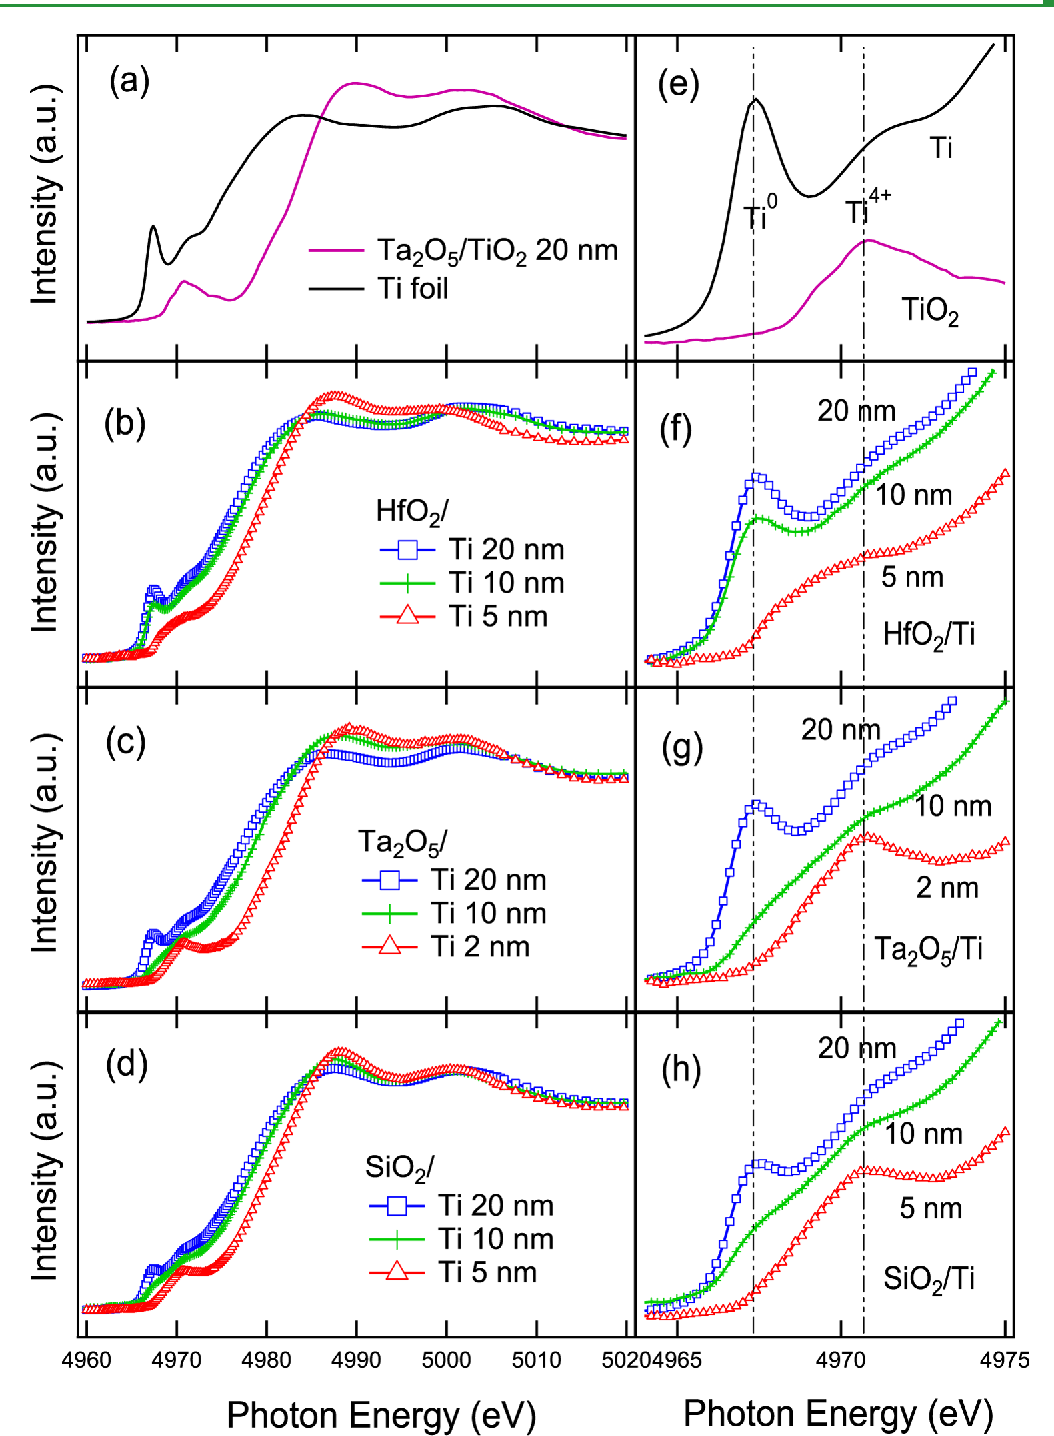 Figure 3.Ti K-edge XAS spectra of (a) Ta2O5/TiO2 (20 nm) andTi foil for reference, (b)HfO2/Ti (5, 10, and 20 nm), (c) Ta2O5/Ti (2, 10, and 20 nm) and (d) SiO2/Ti (5, 10, and 20 nm). (e−h) Pre-edge regions of (a−d), respectively.